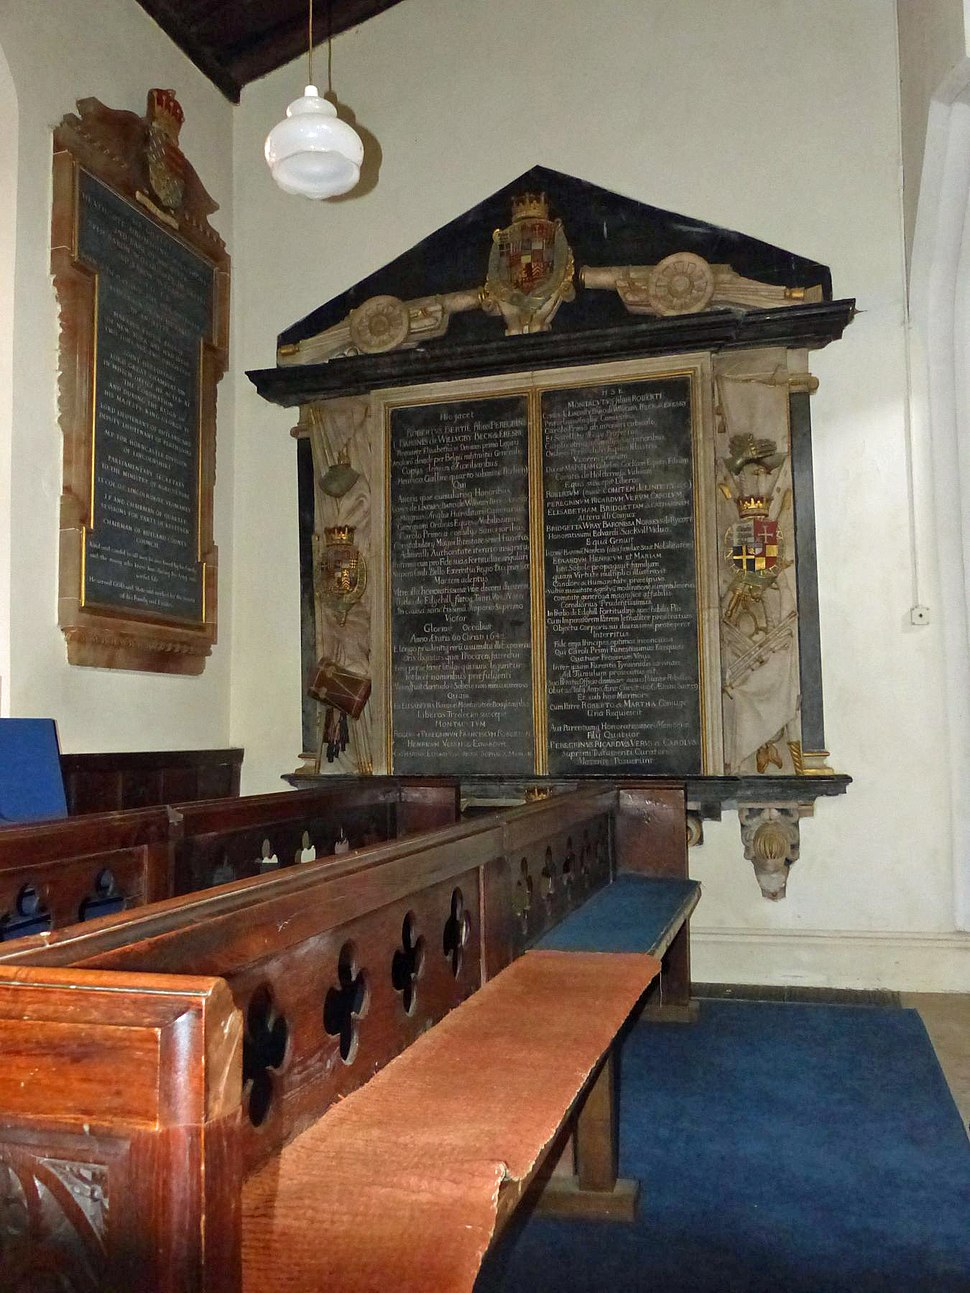 Memorial to Robert Bertie, 1st Earl of Lindsey, and his son Montague